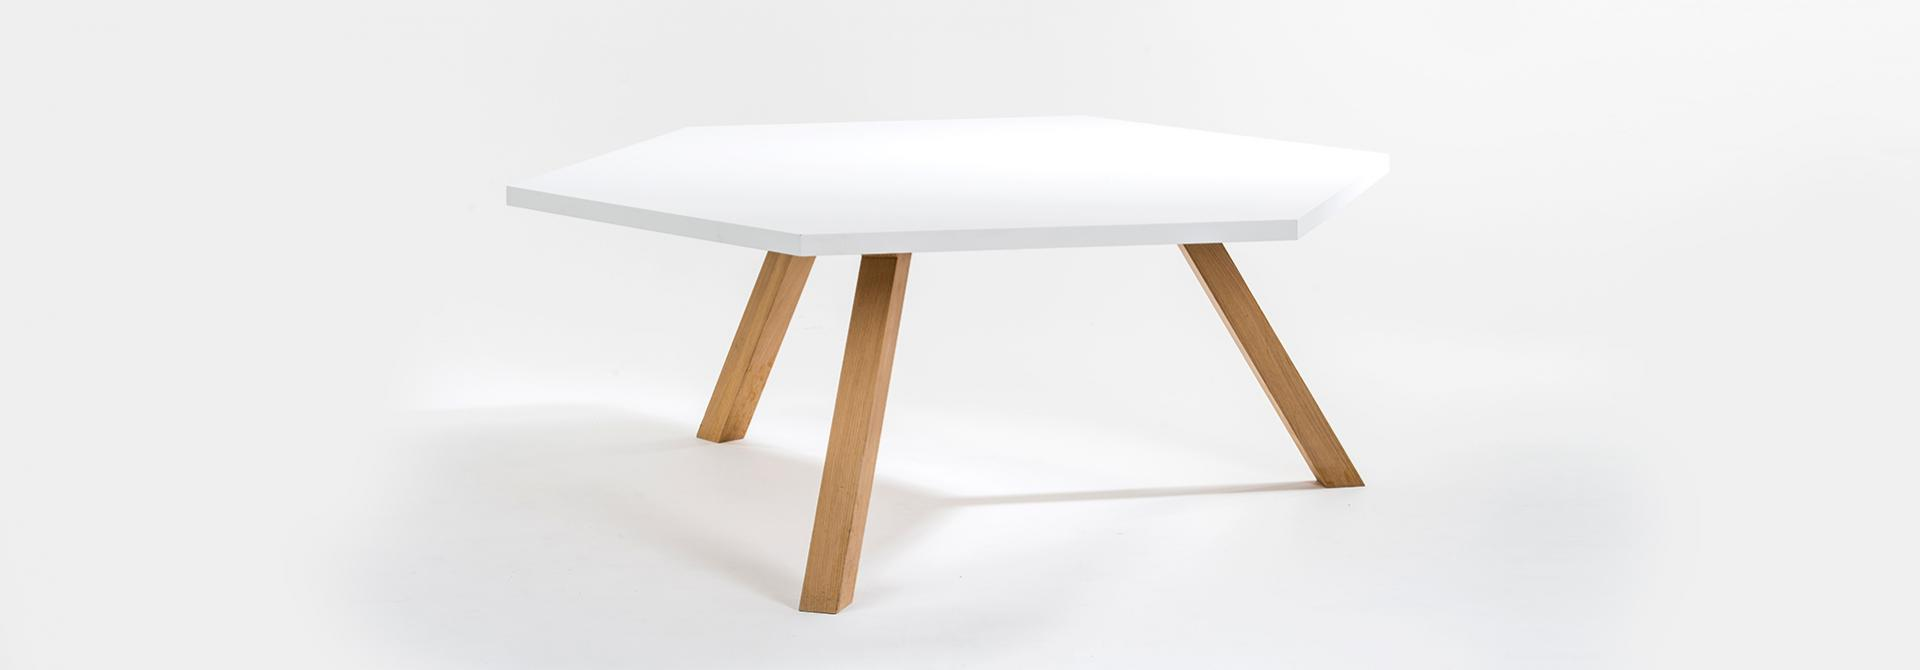 table hex white with wood table legs front view